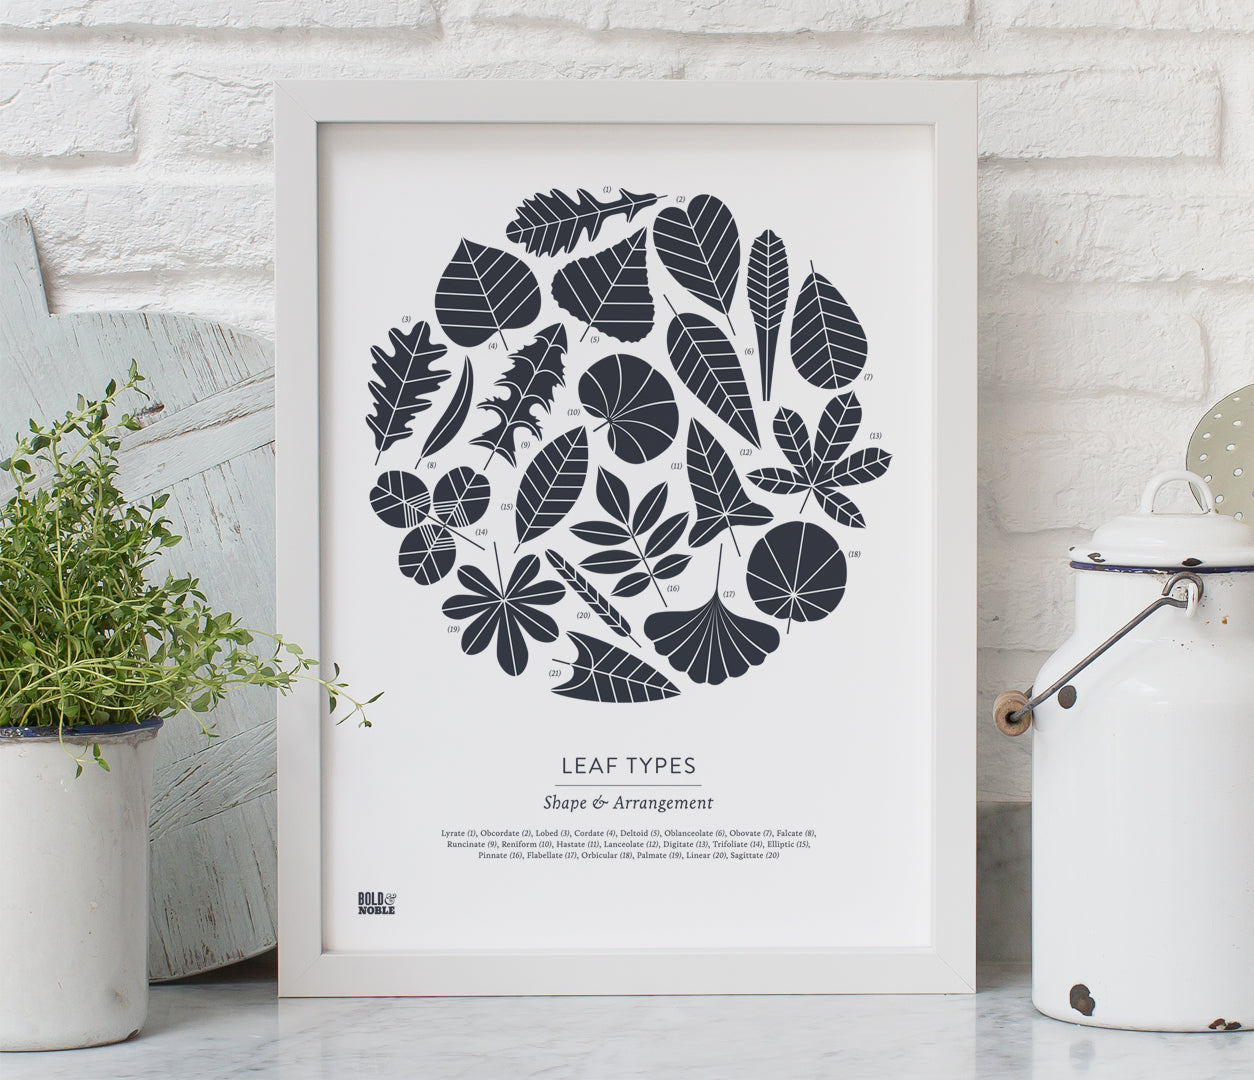 Pictures and Wall Art, Screen Printed Leaf Types design in sheer slate